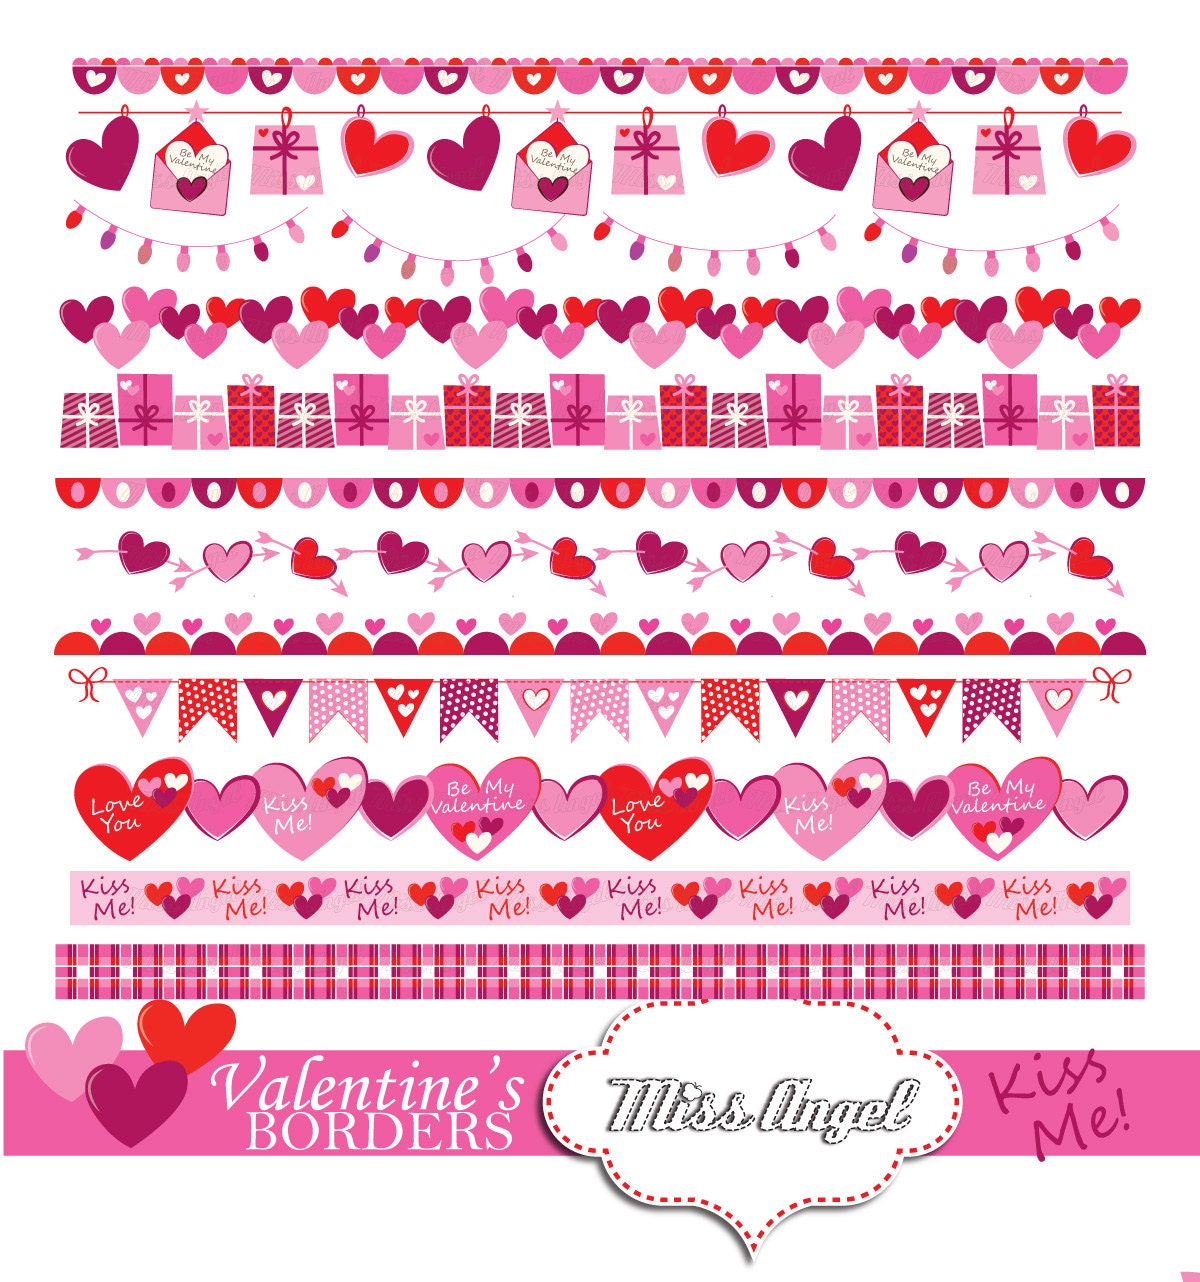 graphic relating to Valentine Borders Free Printable called No cost Printable Valentine Borders Clipart Variety Popularity